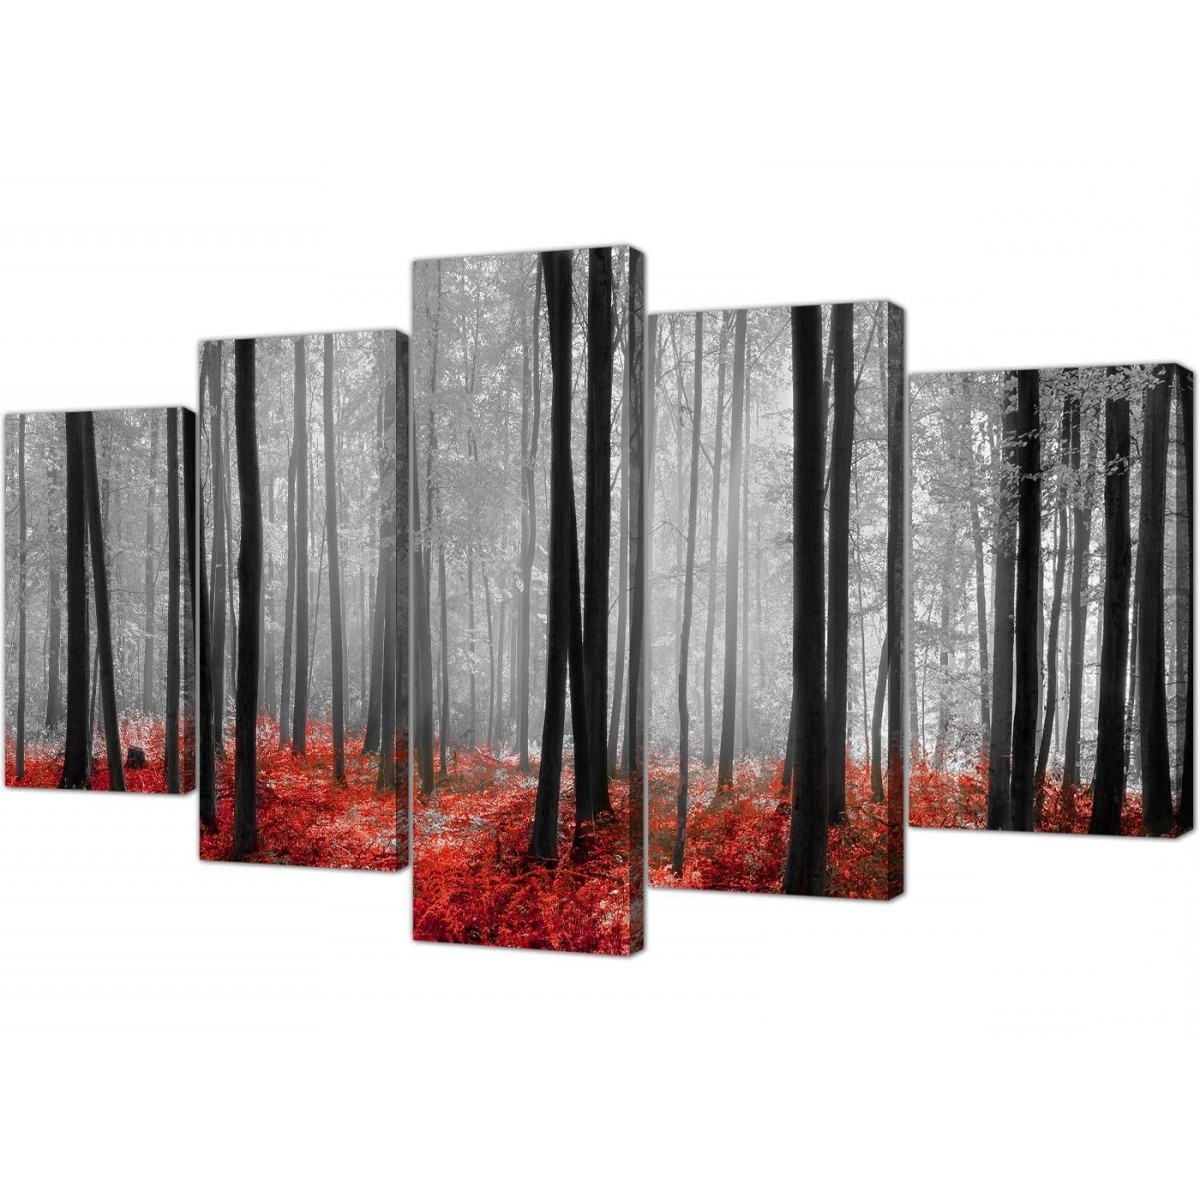 Most Recent Black And White Large Canvas Wall Art In Extra Large Canvas Prints Of Red Forest Woodland Trees In Black & White (View 14 of 15)